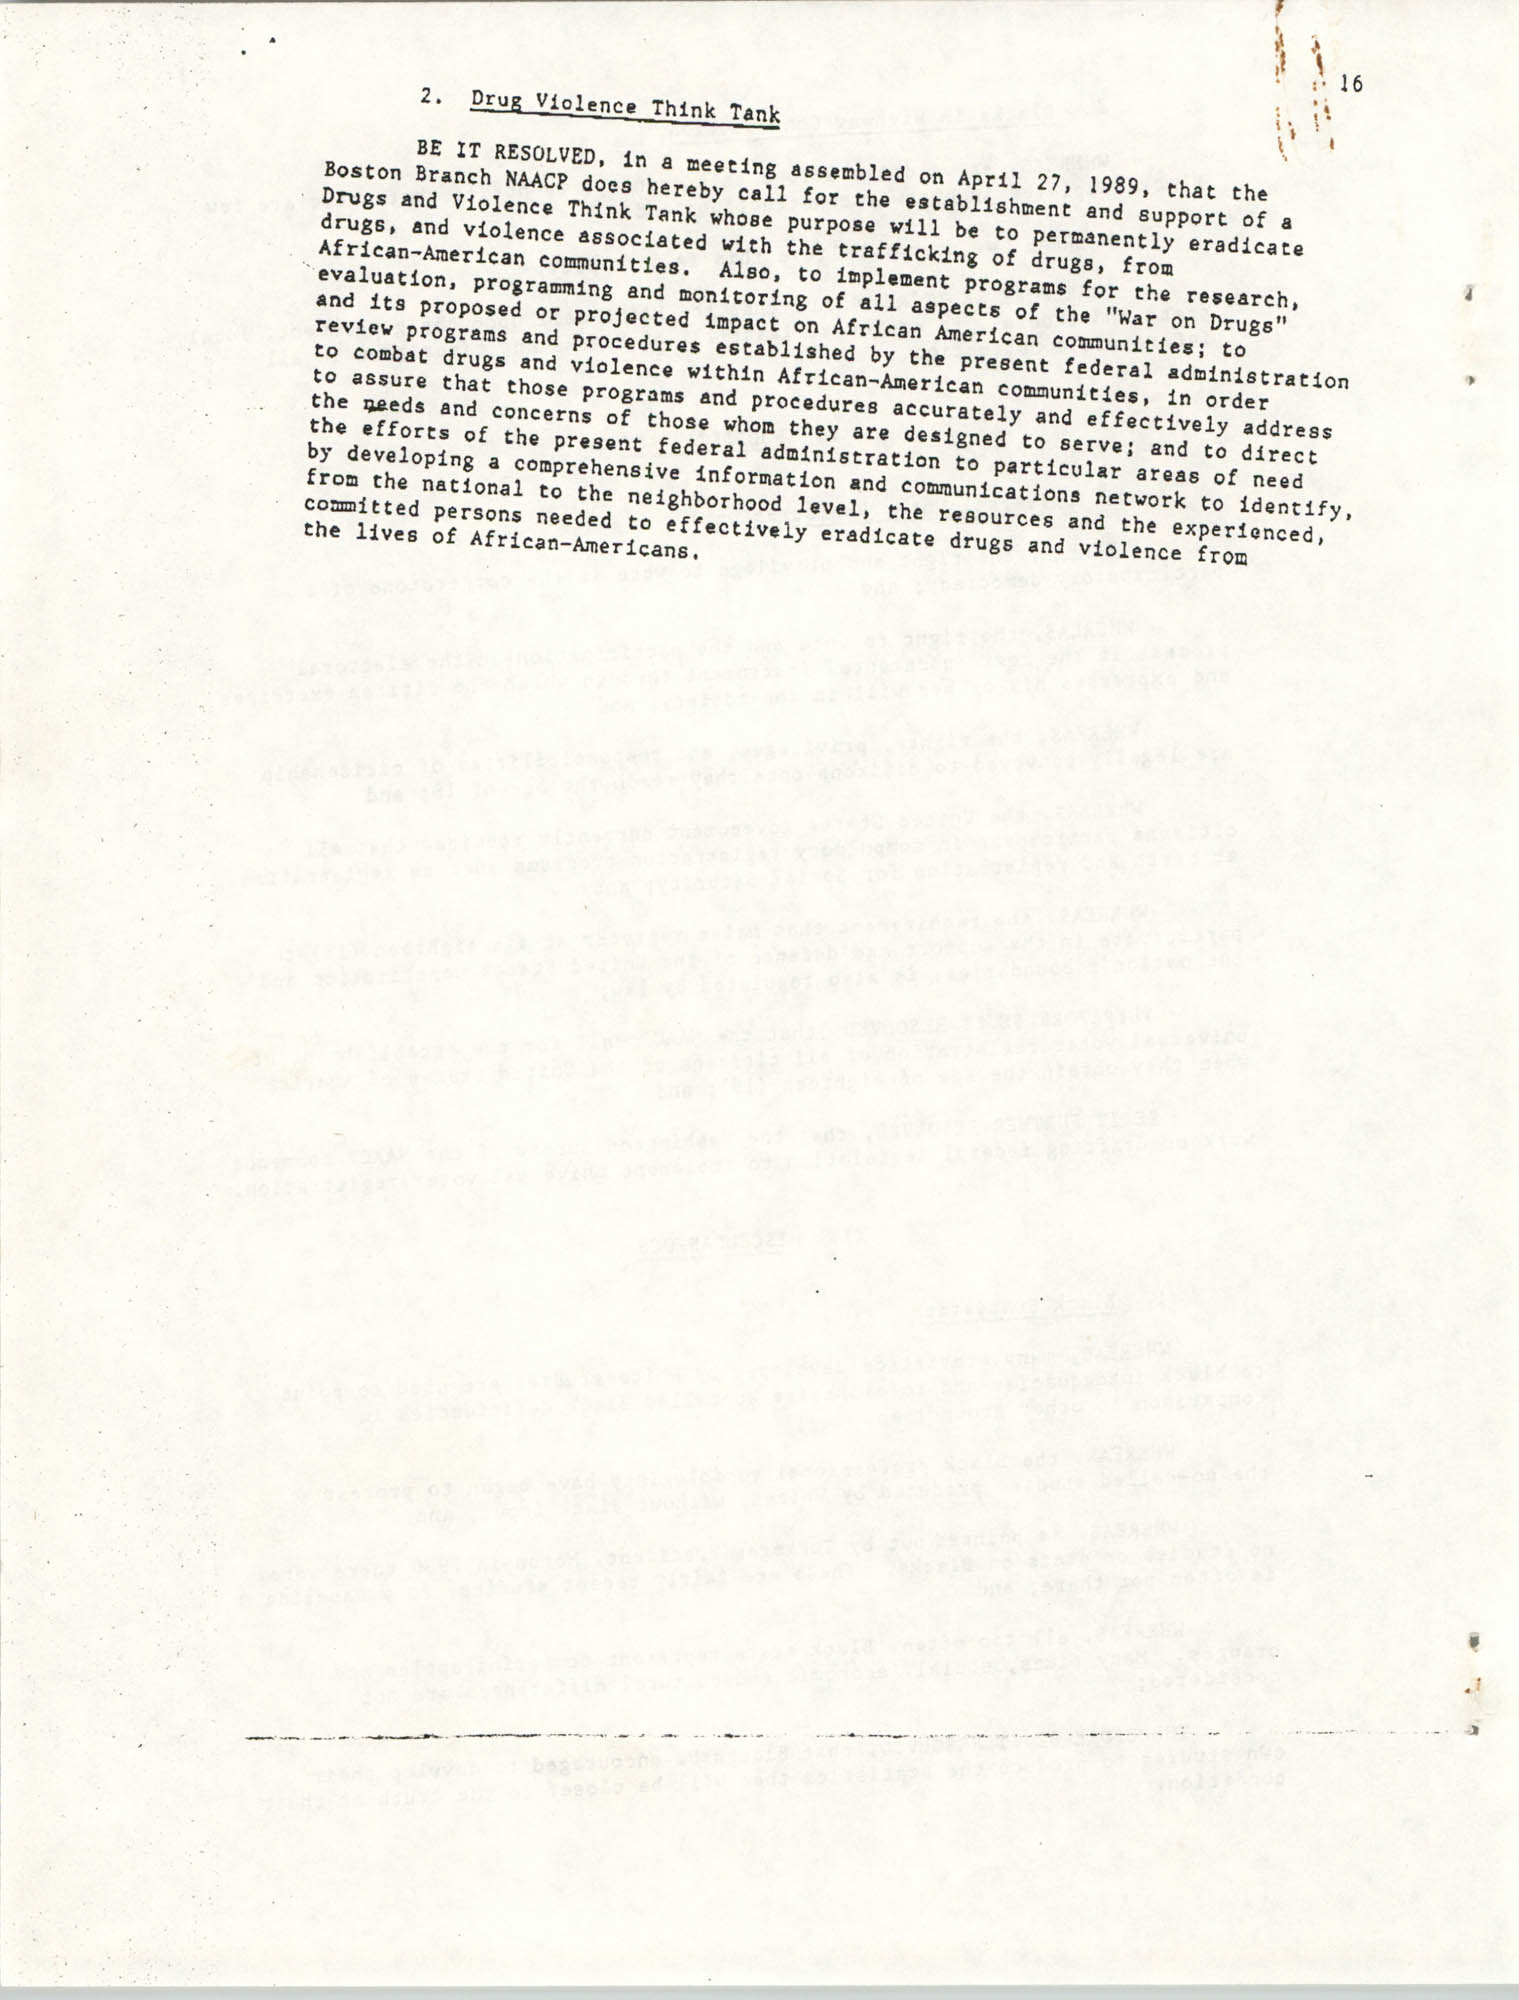 Resolutions Submitted Under Article X, Section 2 of the Constitution of the NAACP, Page 16